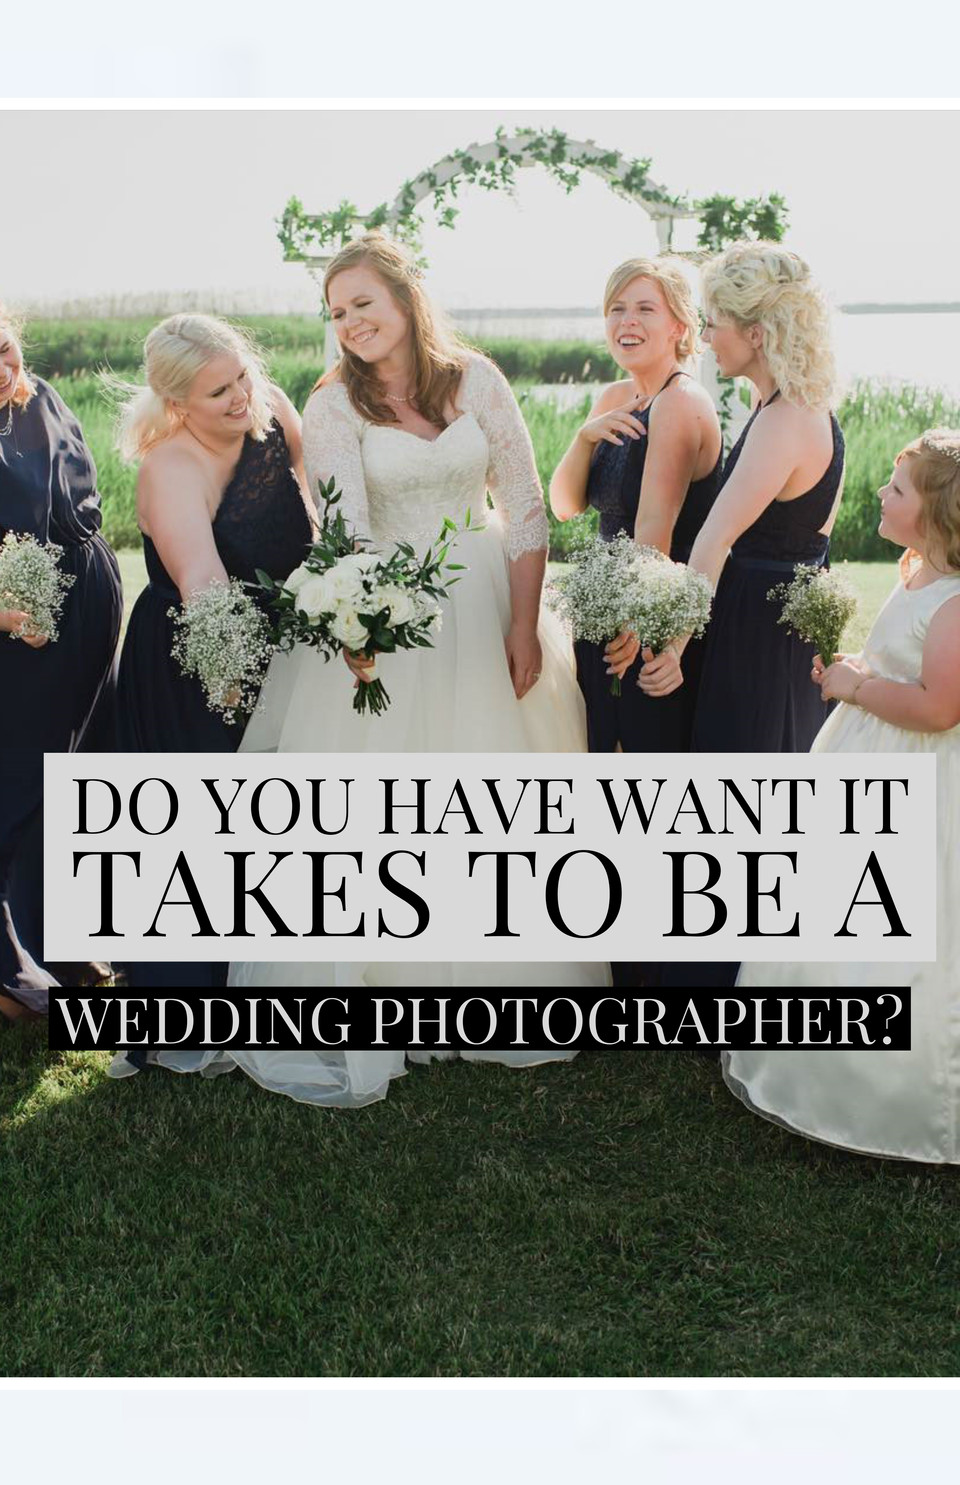 Do You Have What It Take To Be A Wedding Photographer?